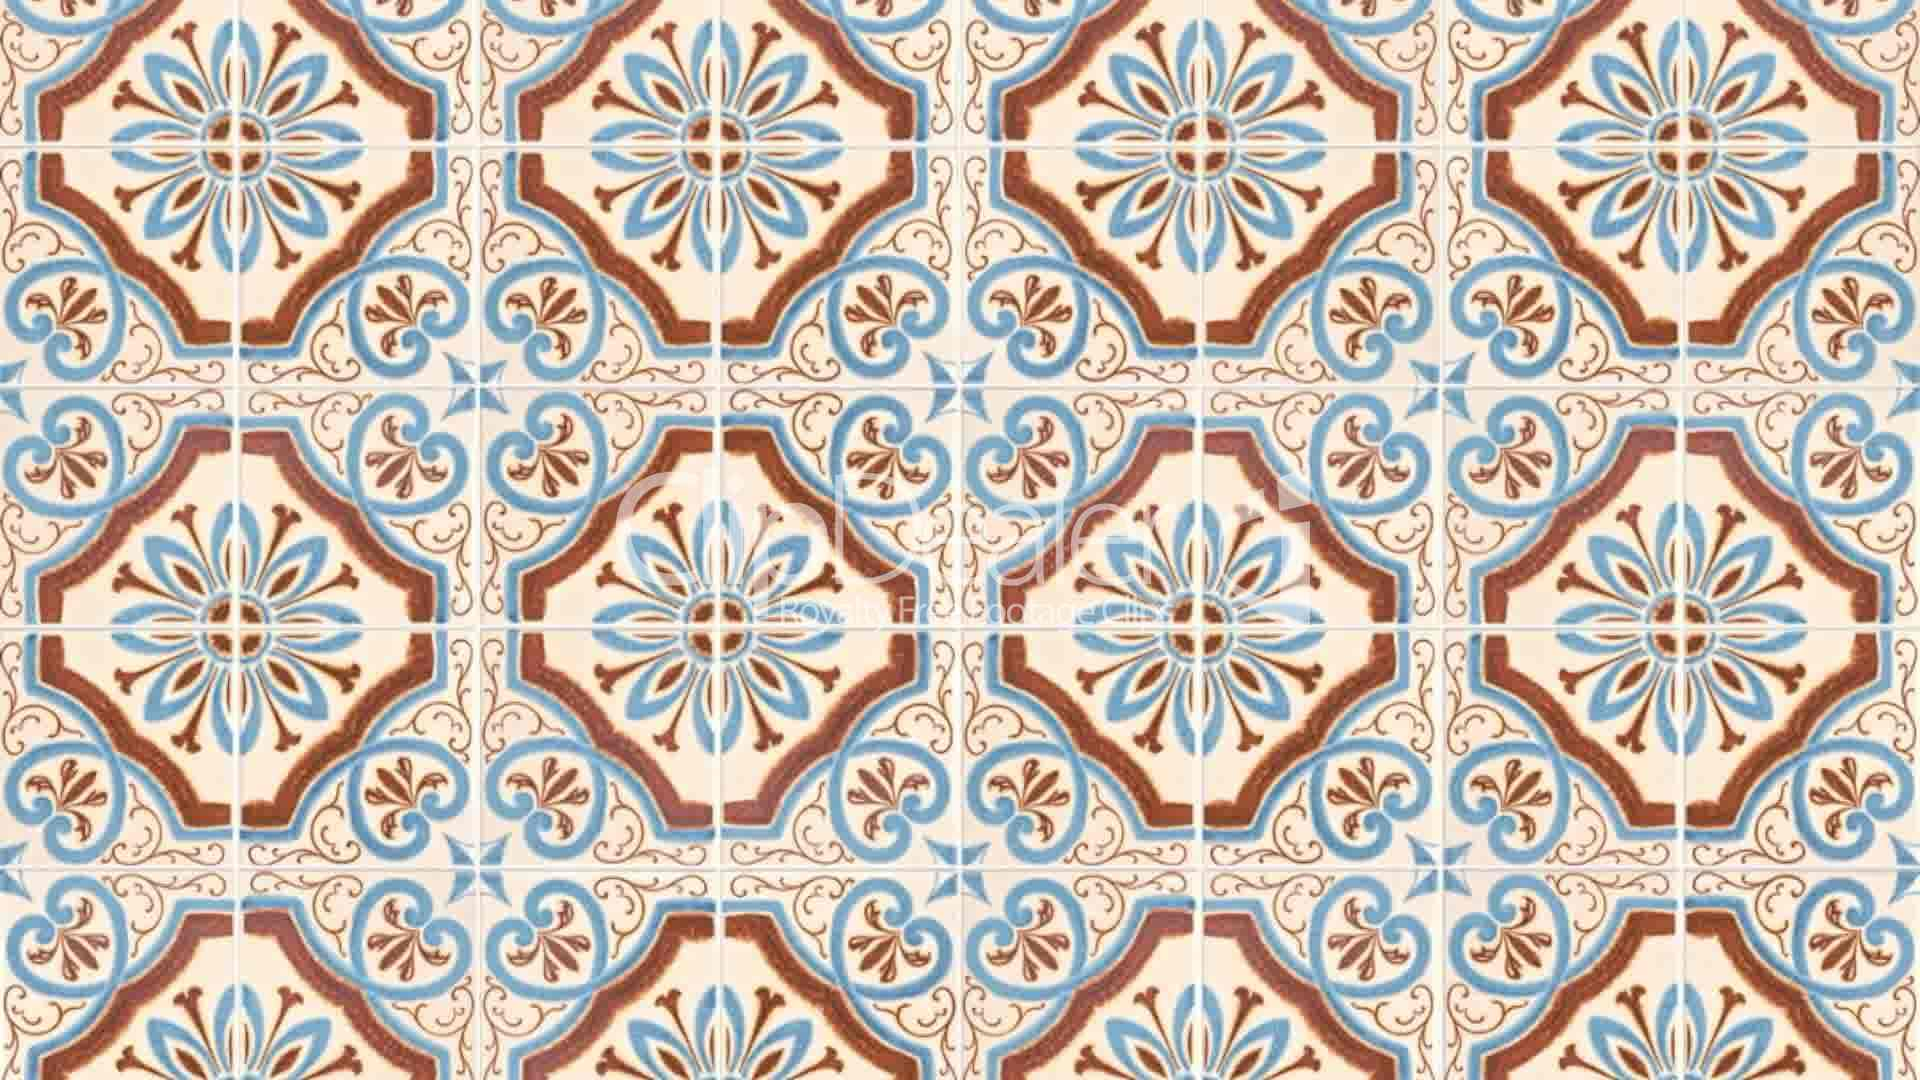 Seamless tile pattern: Royalty-free video and stock footage